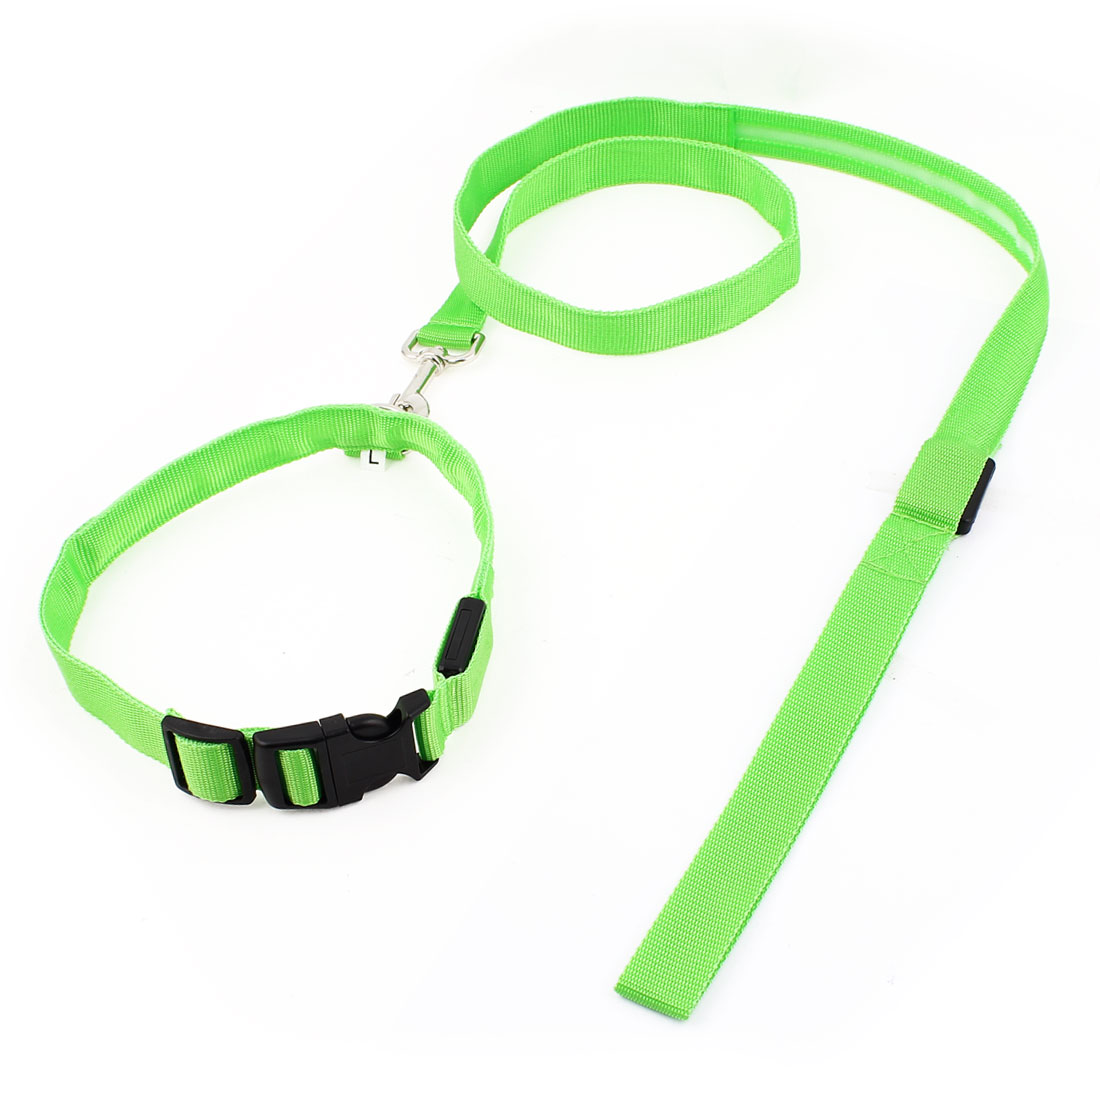 Green LED Flashing Light Release Buckle Pet Dog Adjustable Nylon Collar Leash